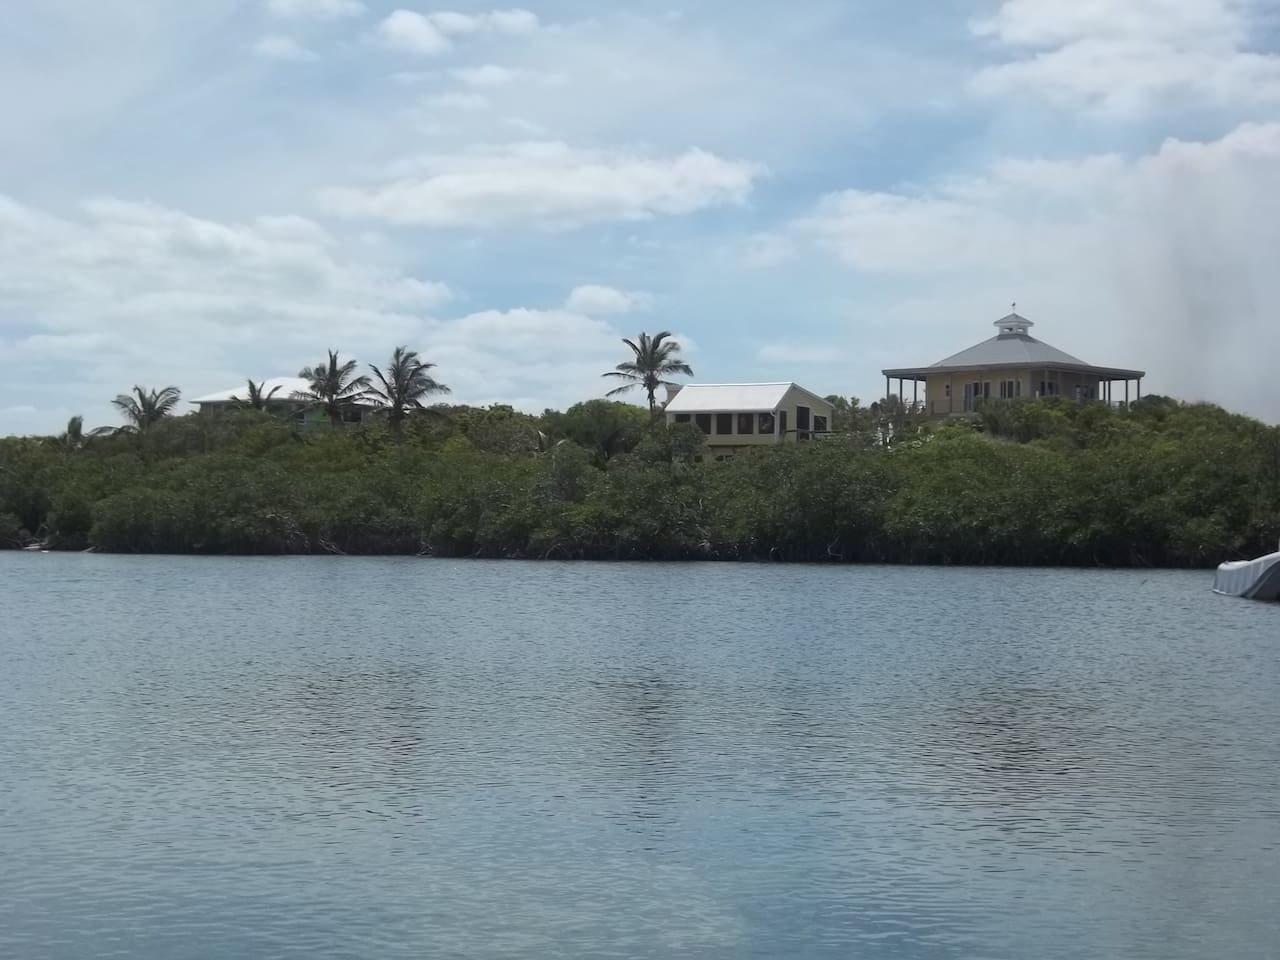 View from across the inlet